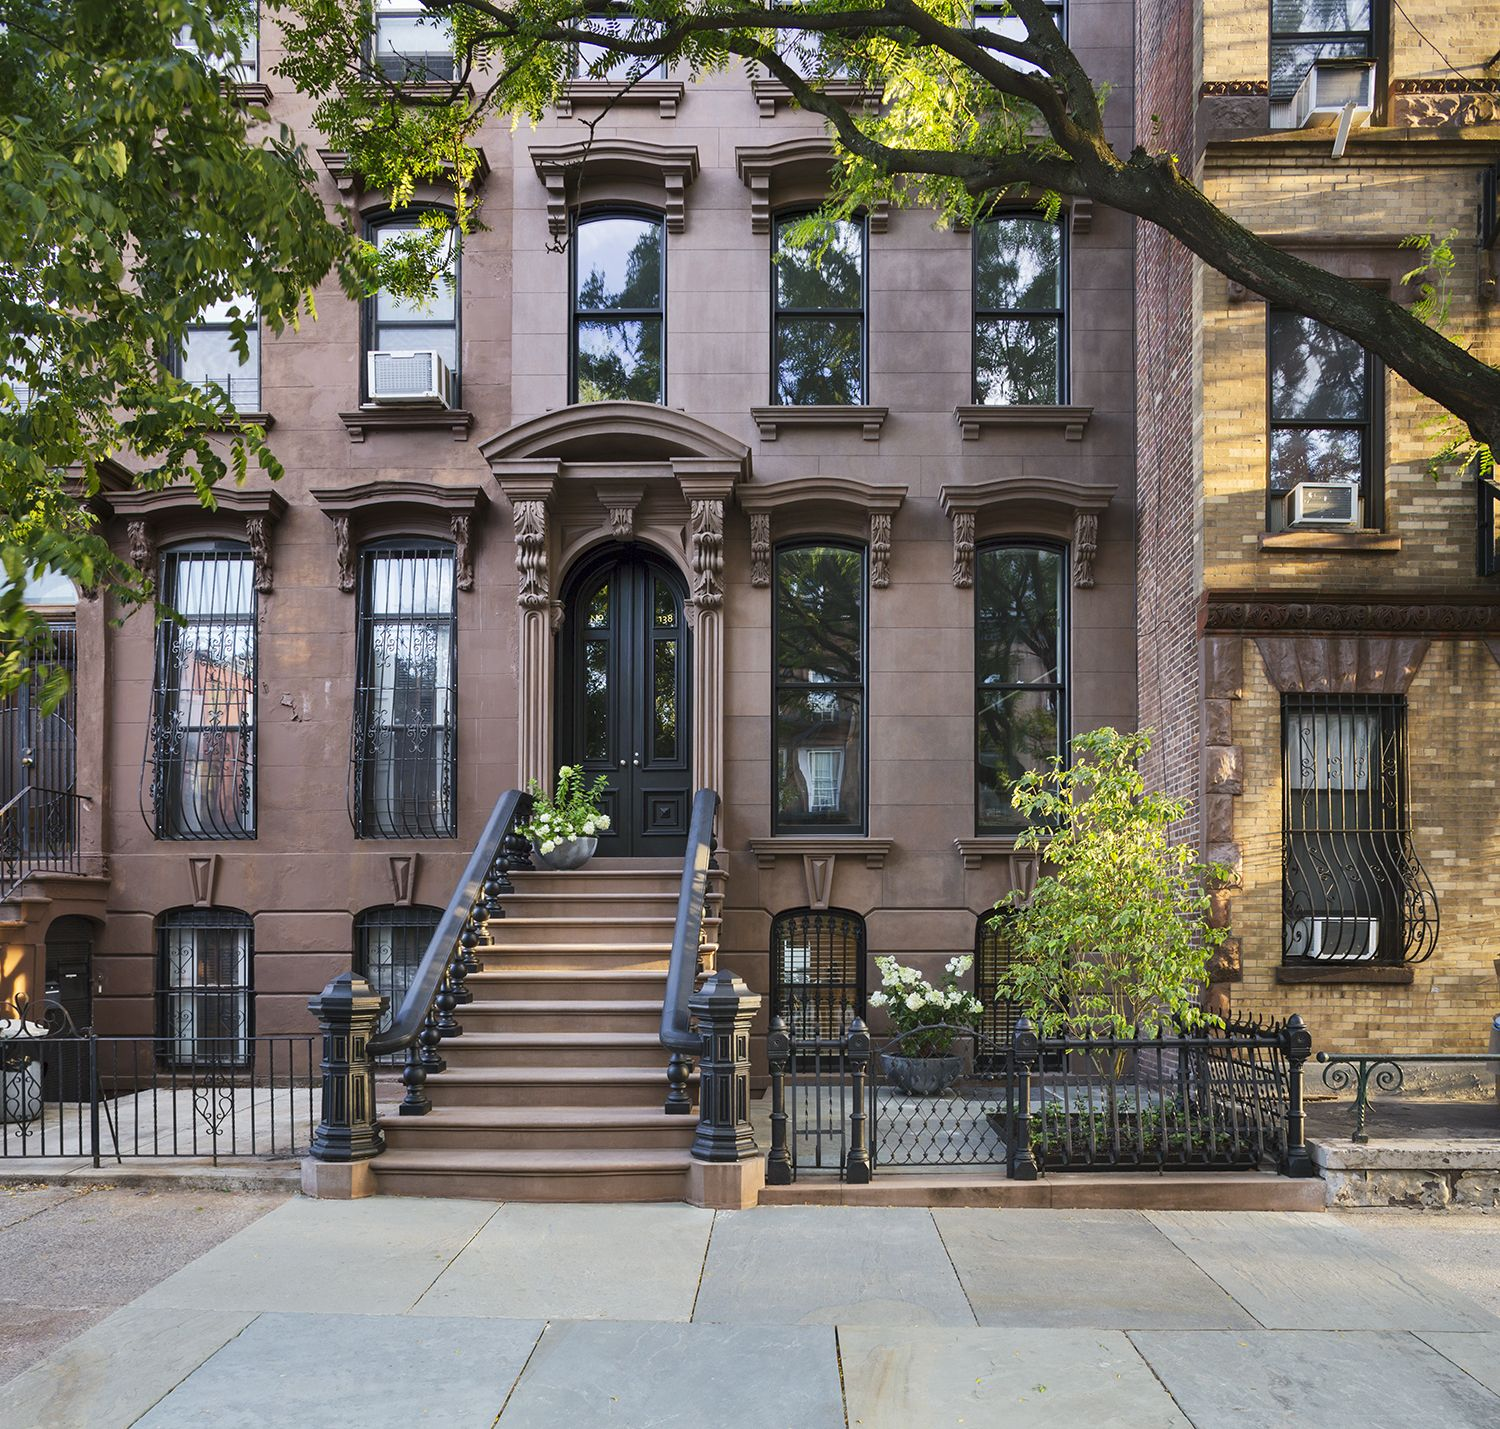 Part VIII: At Last, Moving In to the Renovated Brownstone ...